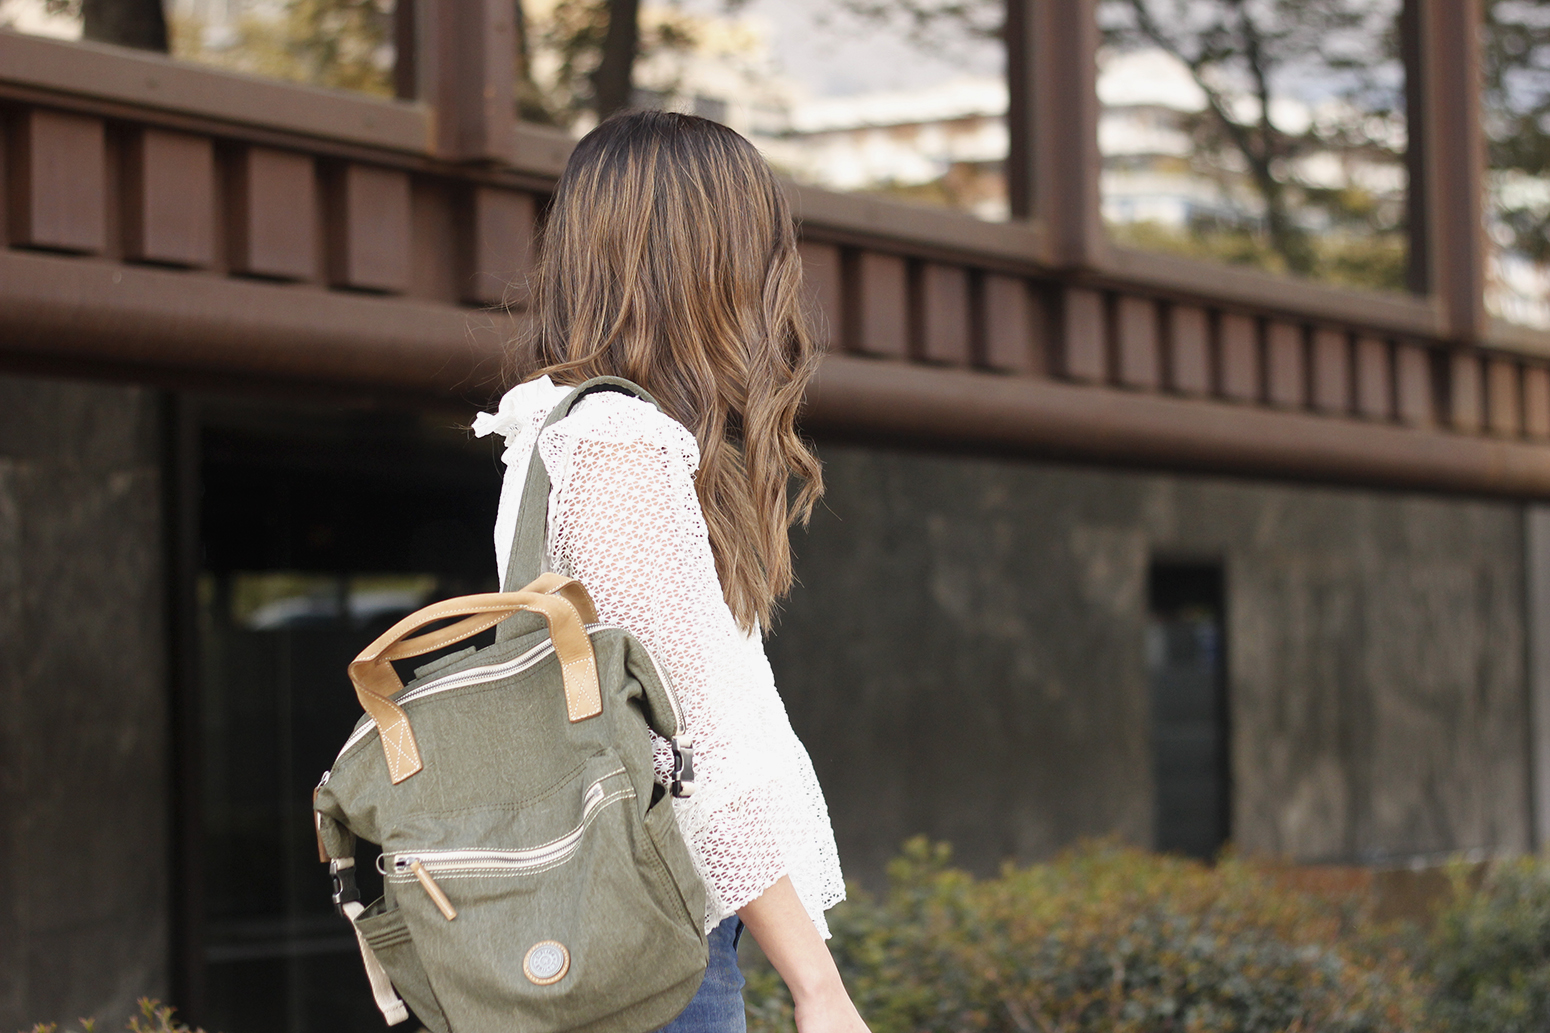 kipling backpack transformation collection khaki white lace blouse casual street style casual outfit 201914